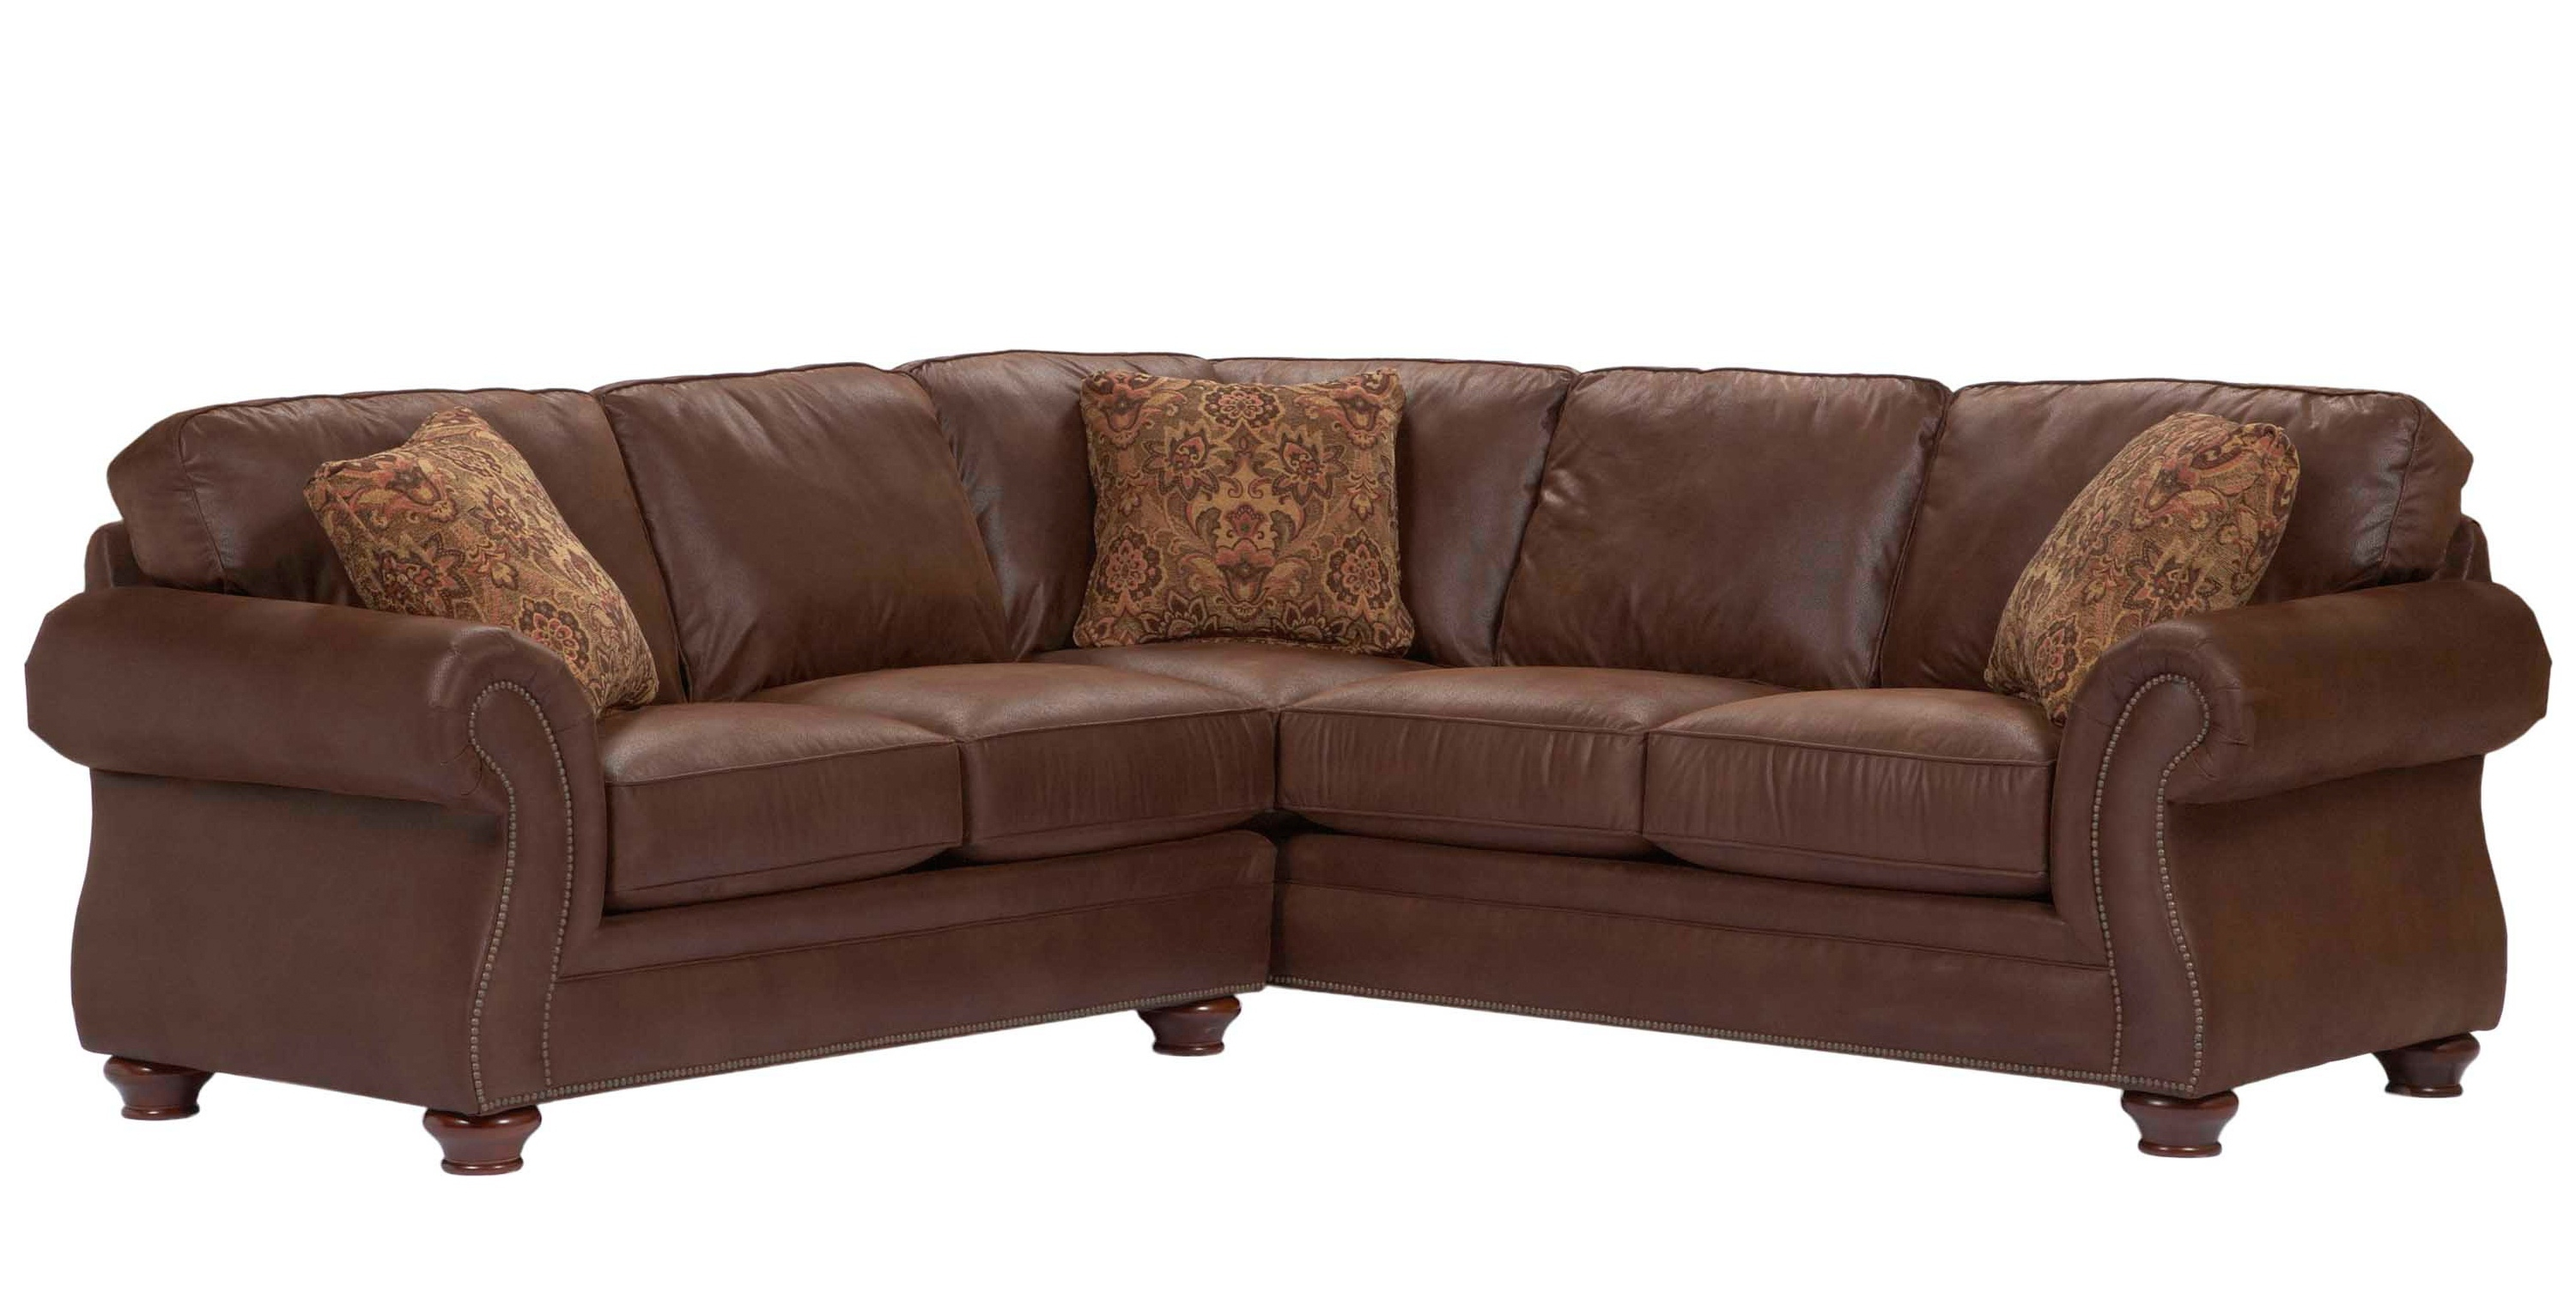 Newest Broyhill Sectional Sofas Pertaining To Broyhill Laramie Sectional 5080 1Q/5080 4Q (View 5 of 15)